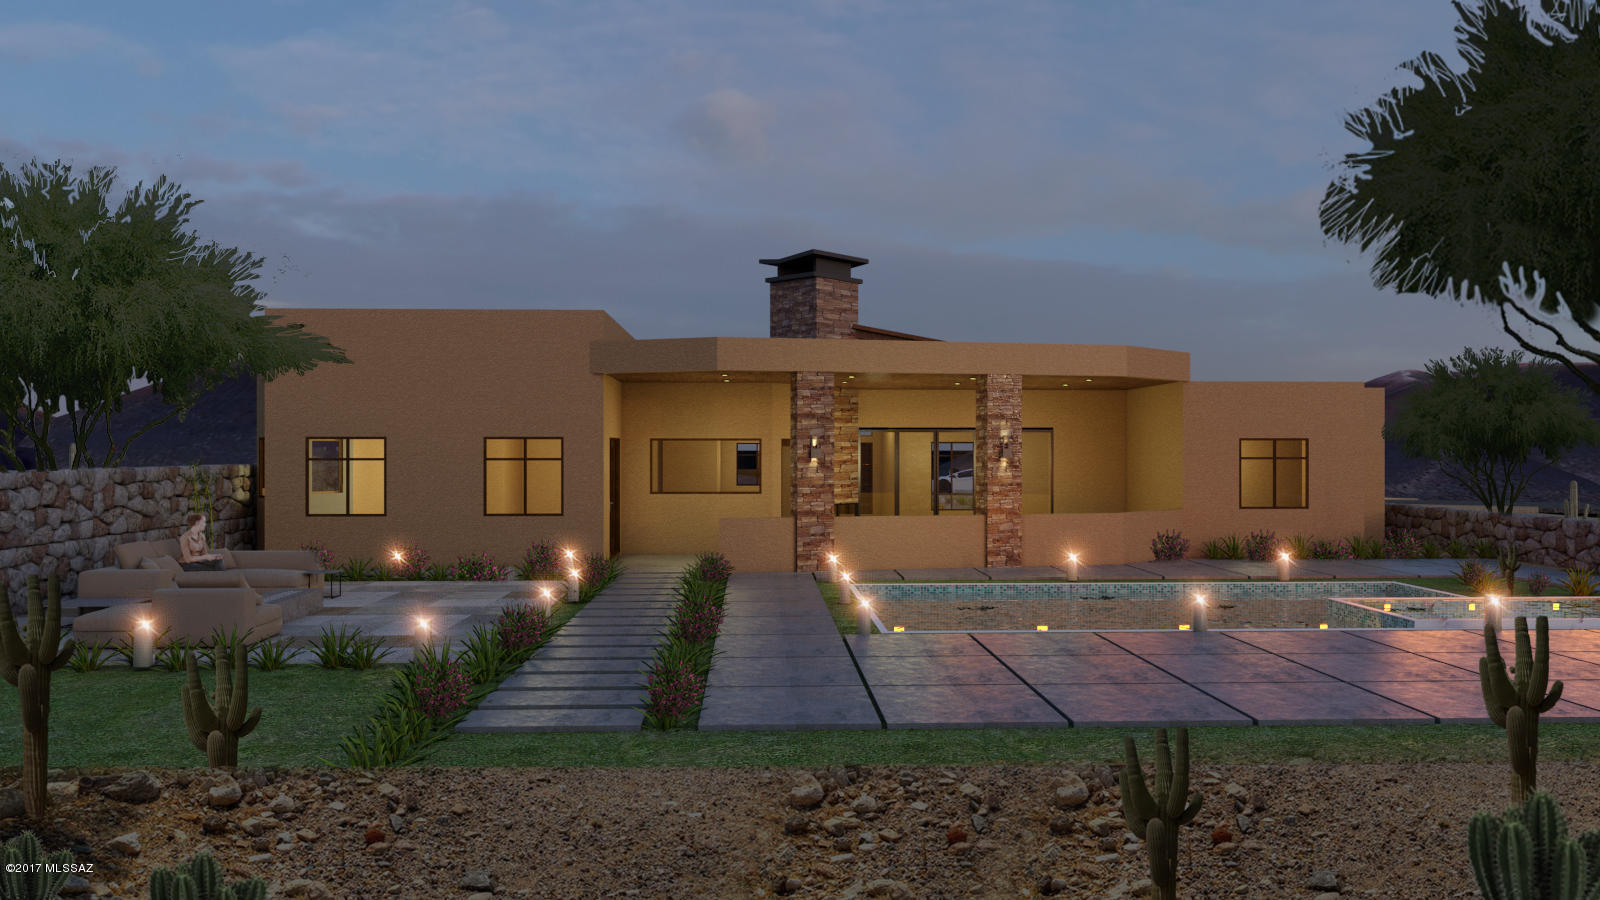 7552 North Westward Look Drive, #D, Tucson, AZ 85704